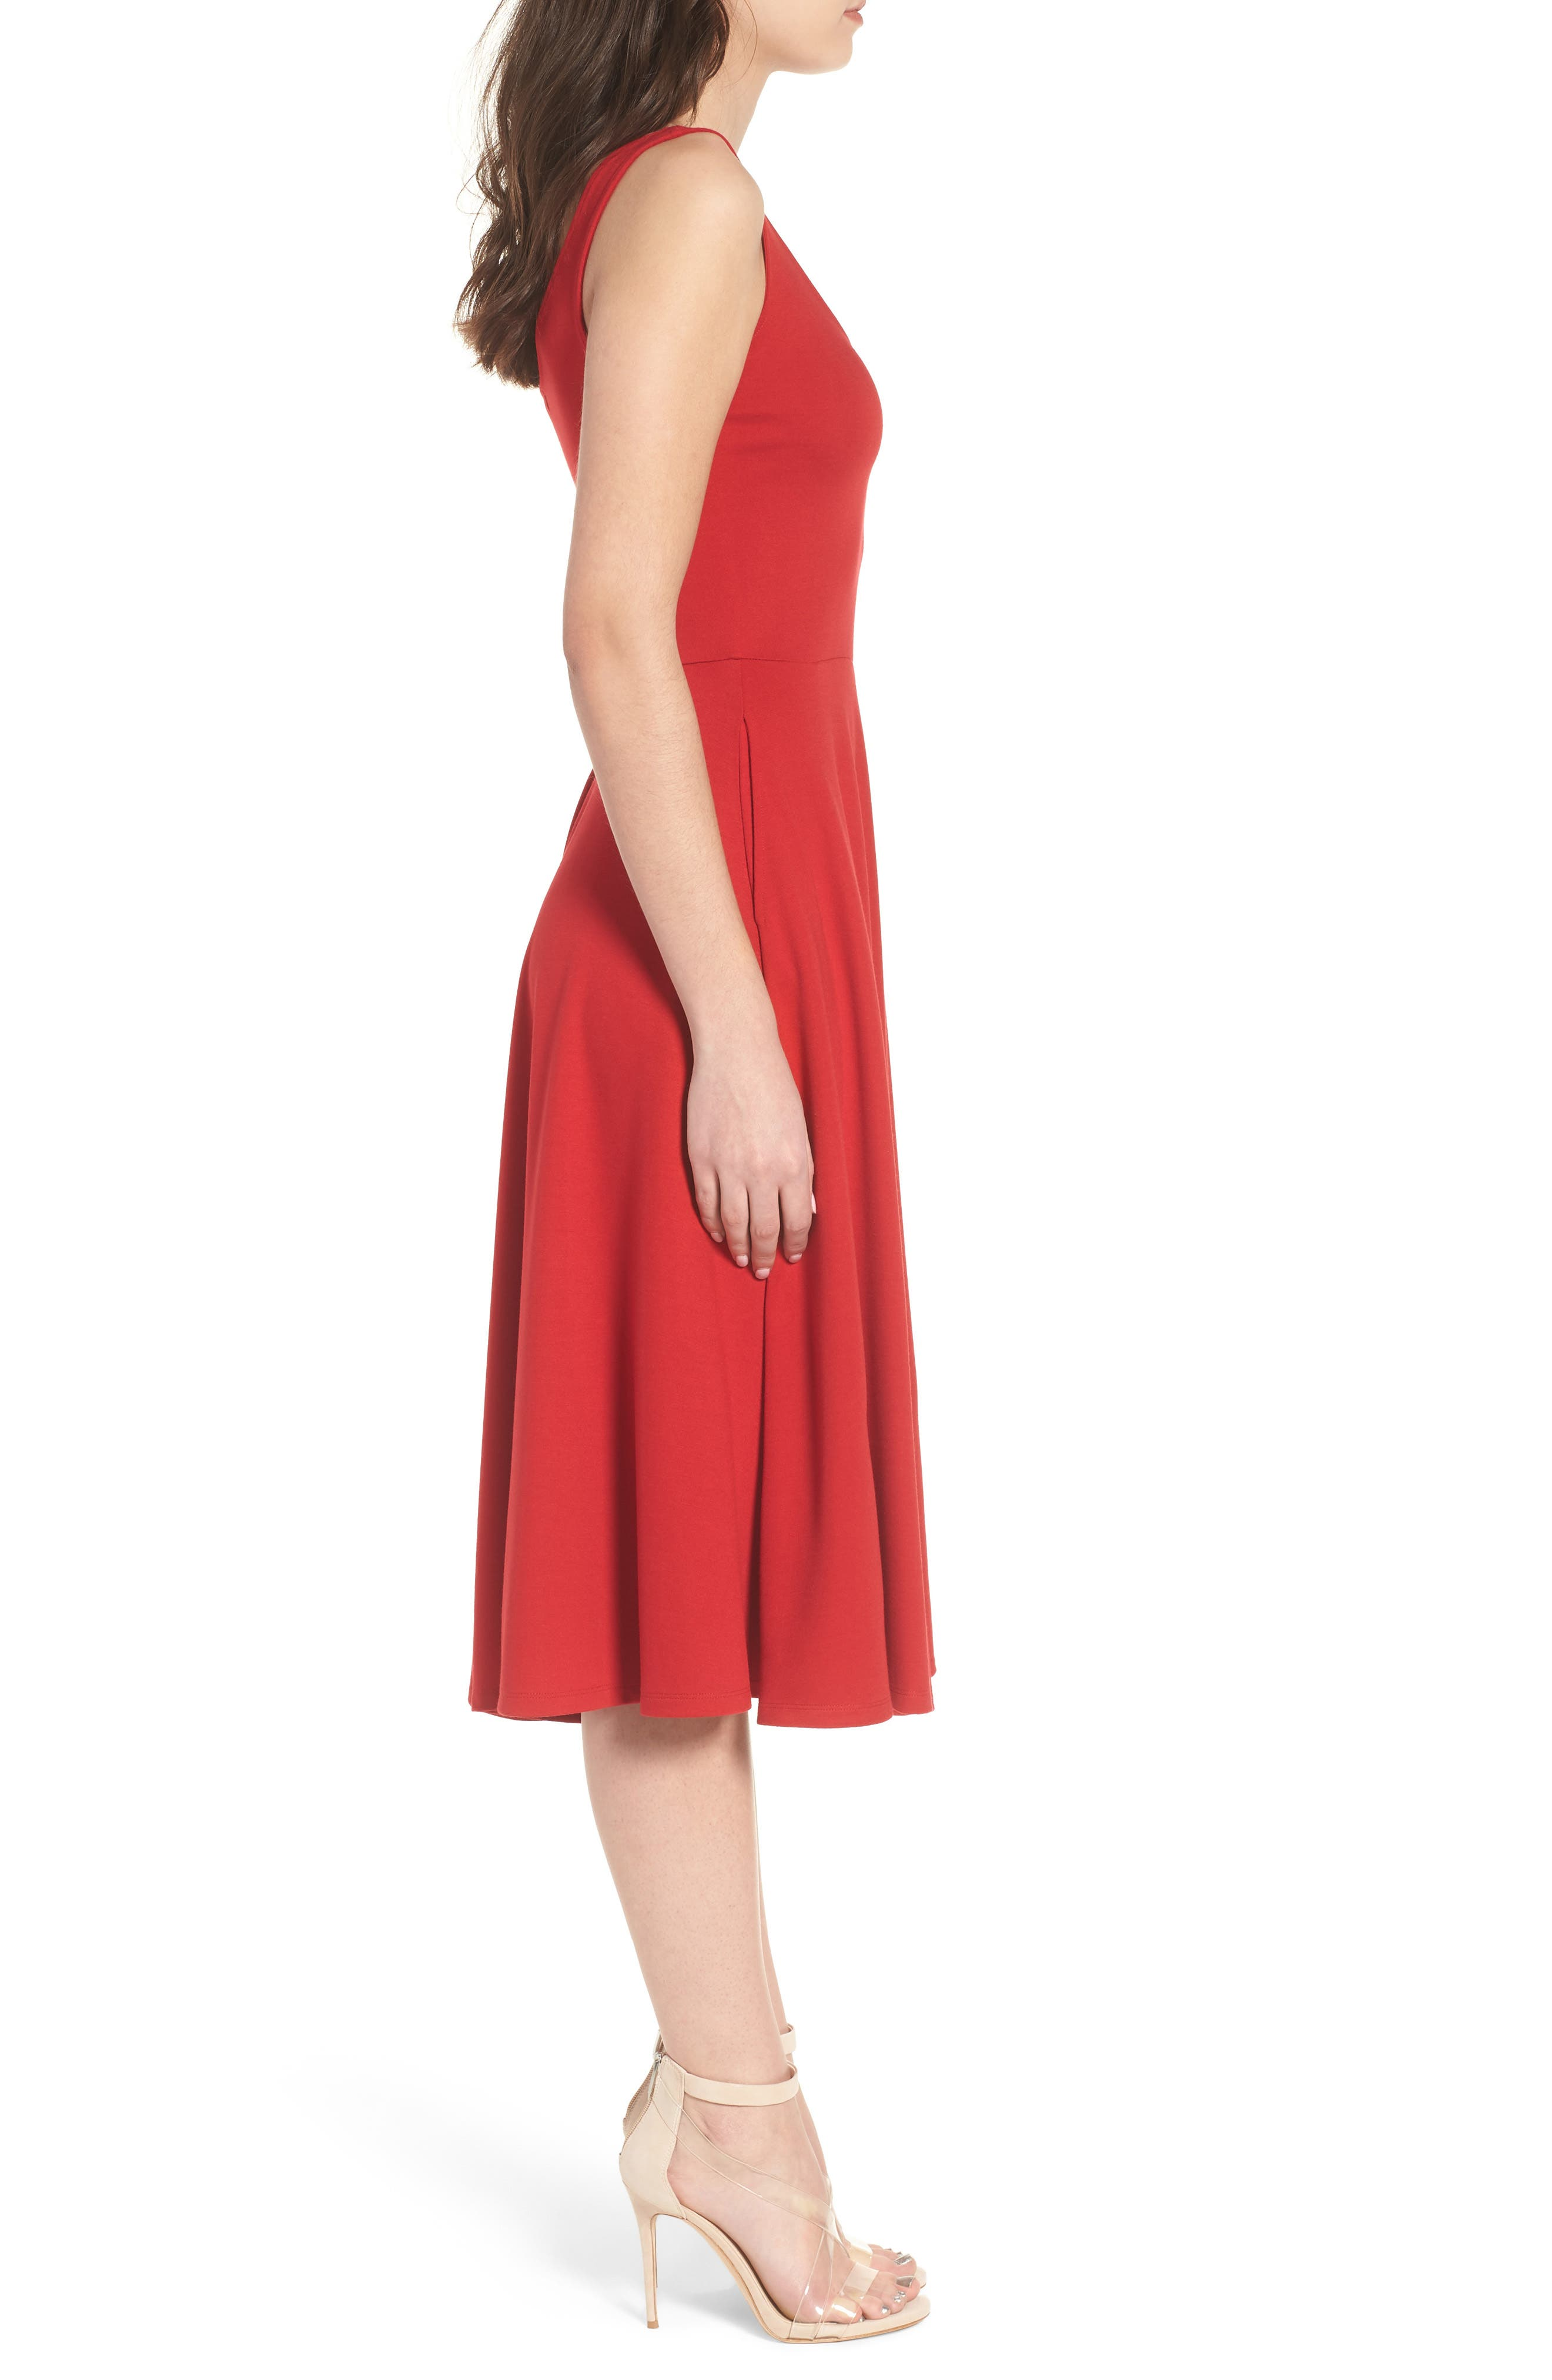 Stretch Knit Midi Dress,                             Alternate thumbnail 2, color,                             Red Couture